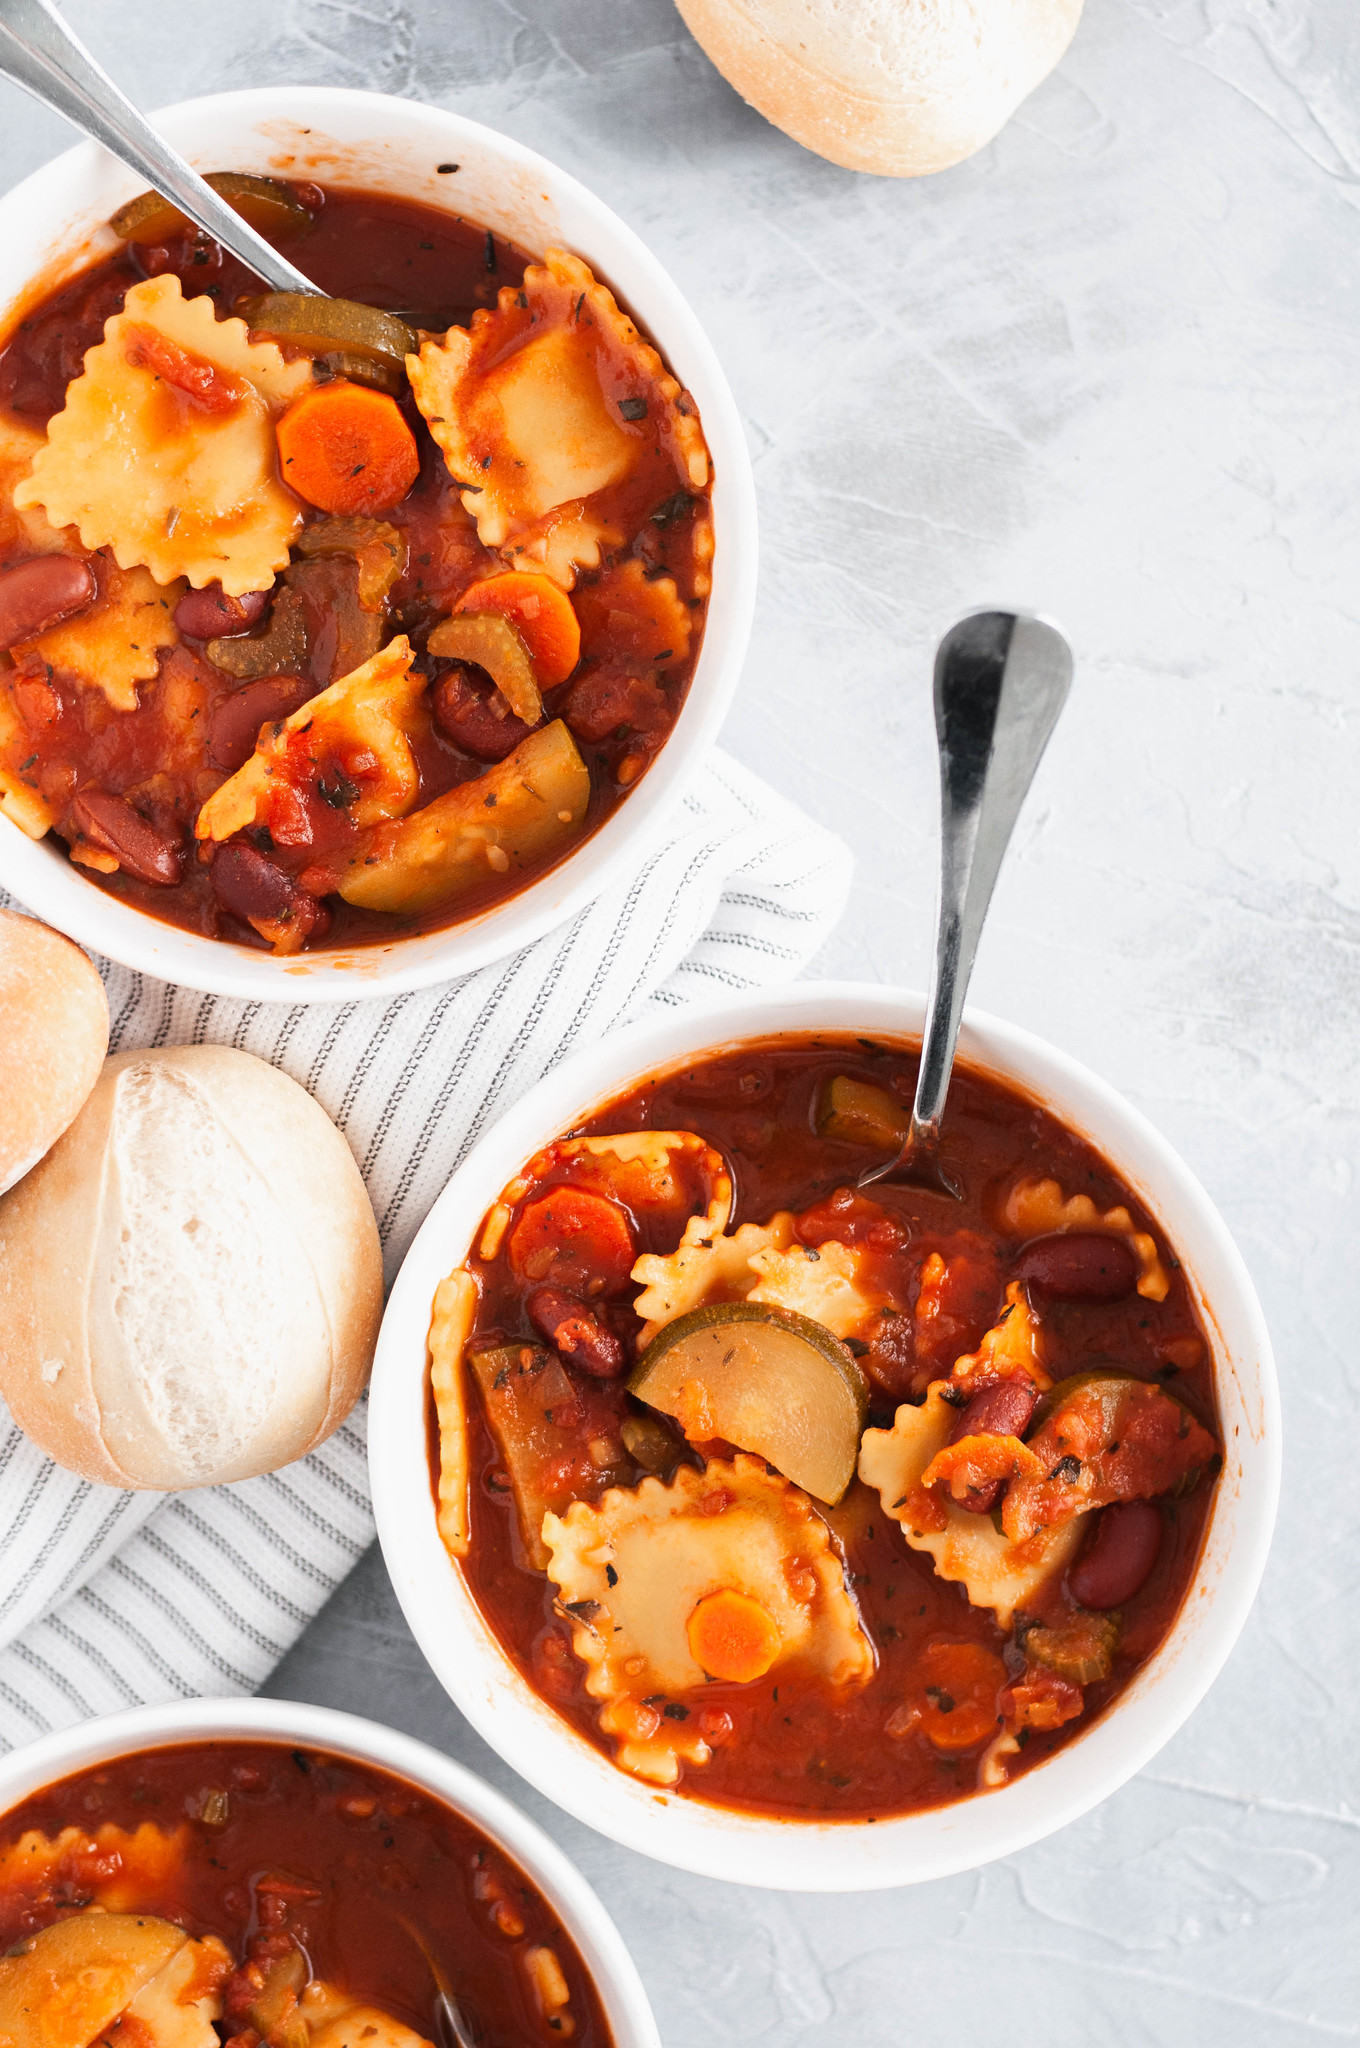 This hearty, filling Minestrone Soup with Cheese Ravioli is a fun twist on a classic soup. Vegetarian, family friendly and only 30 minutes needed.